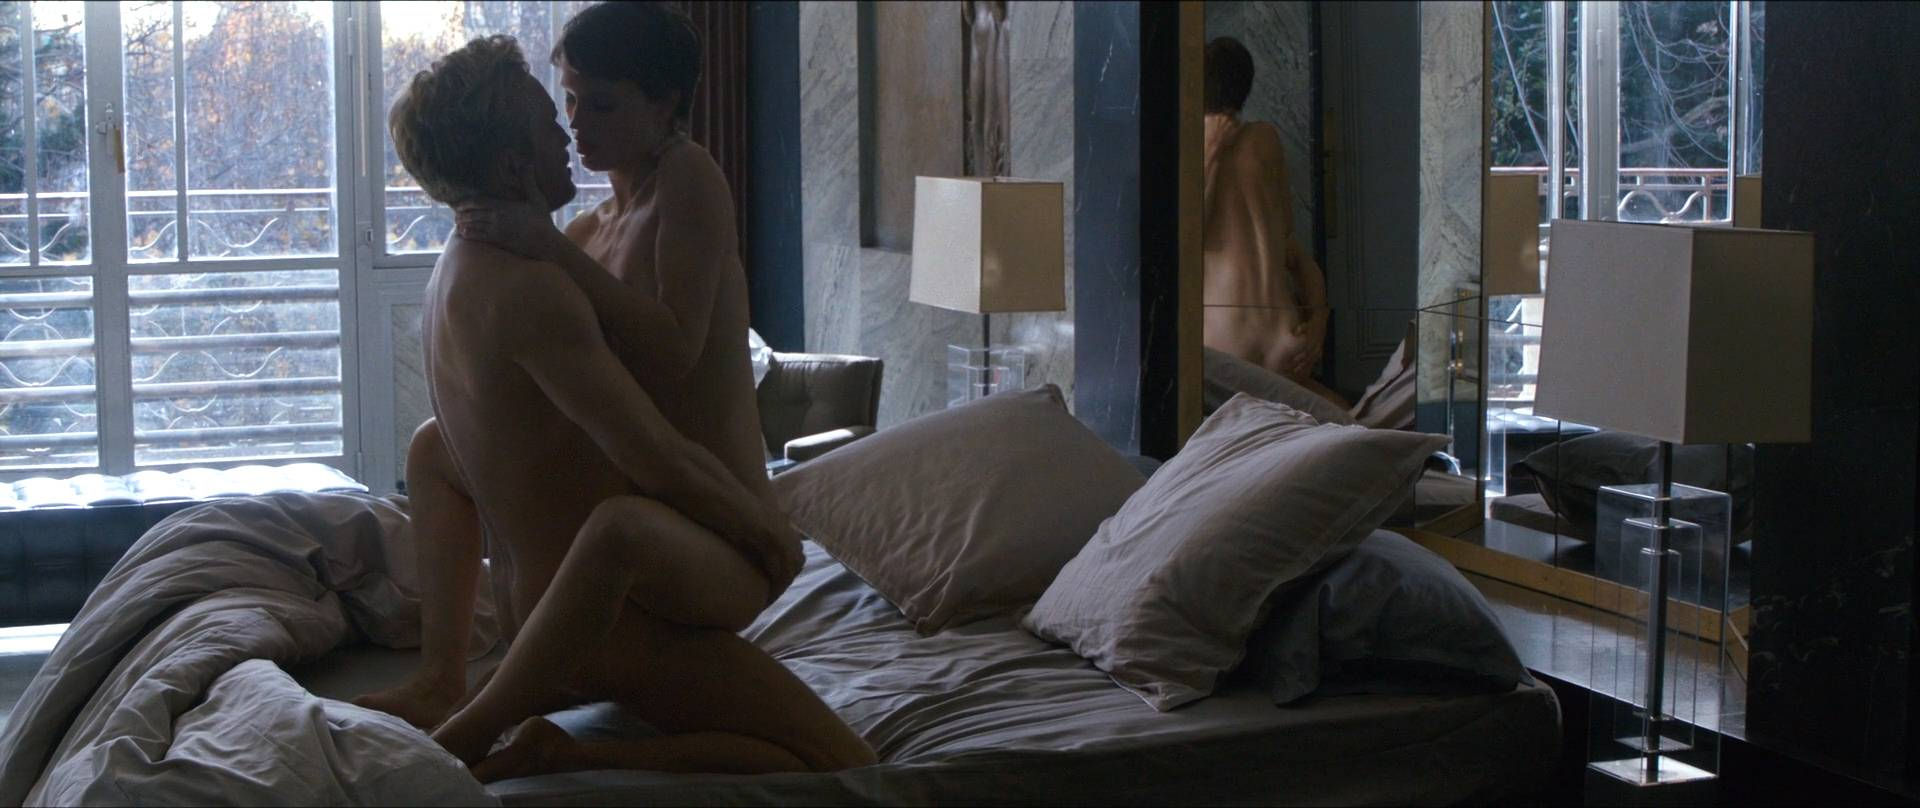 Marine vacth sex in young amp beautiful